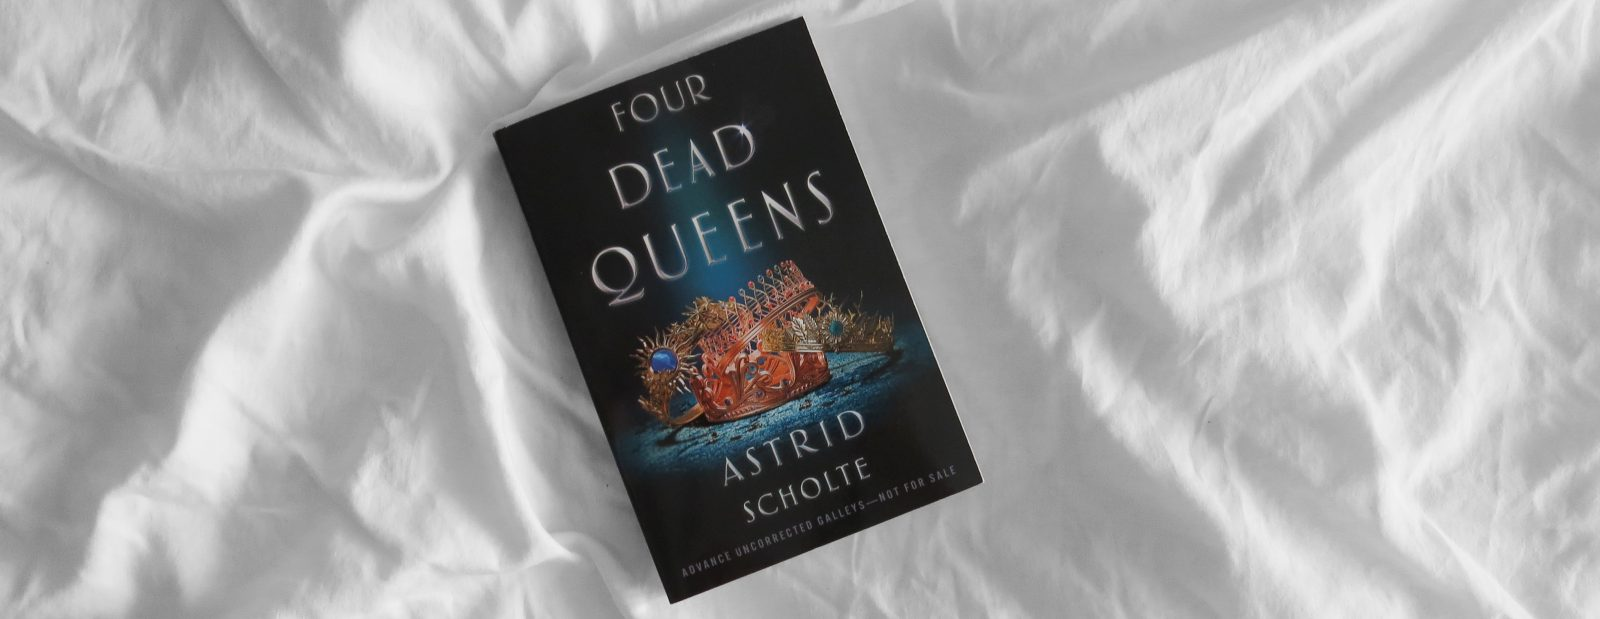 ARC Review | Four Dead Queens by Astrid Scholte